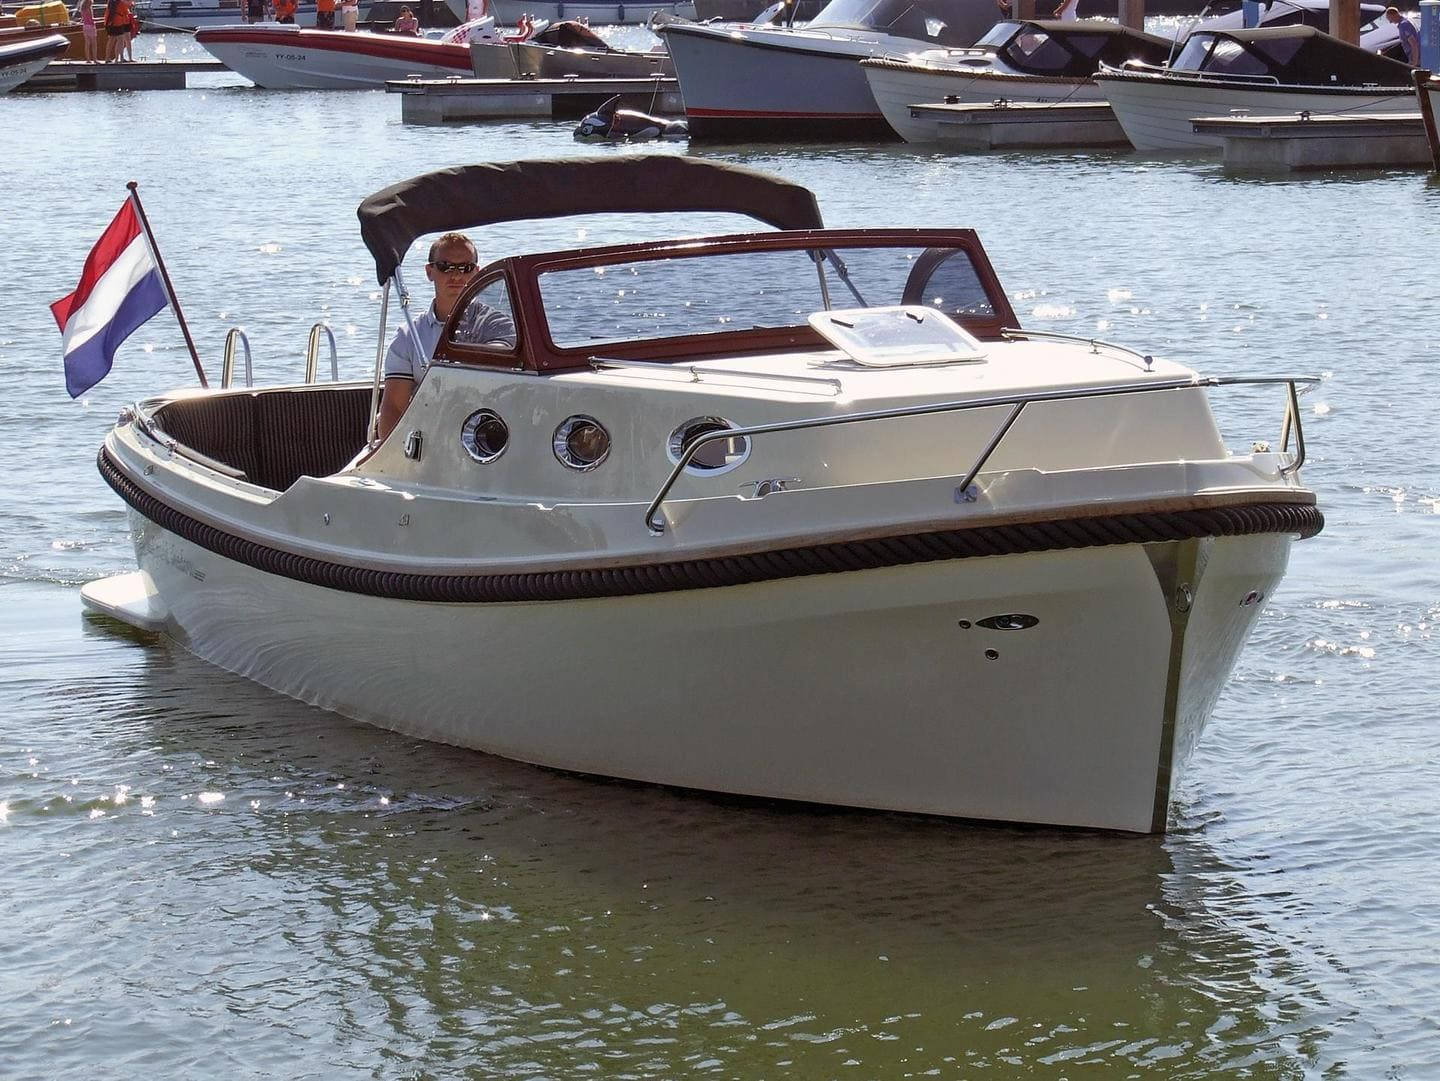 GS cruiser 25 sloep